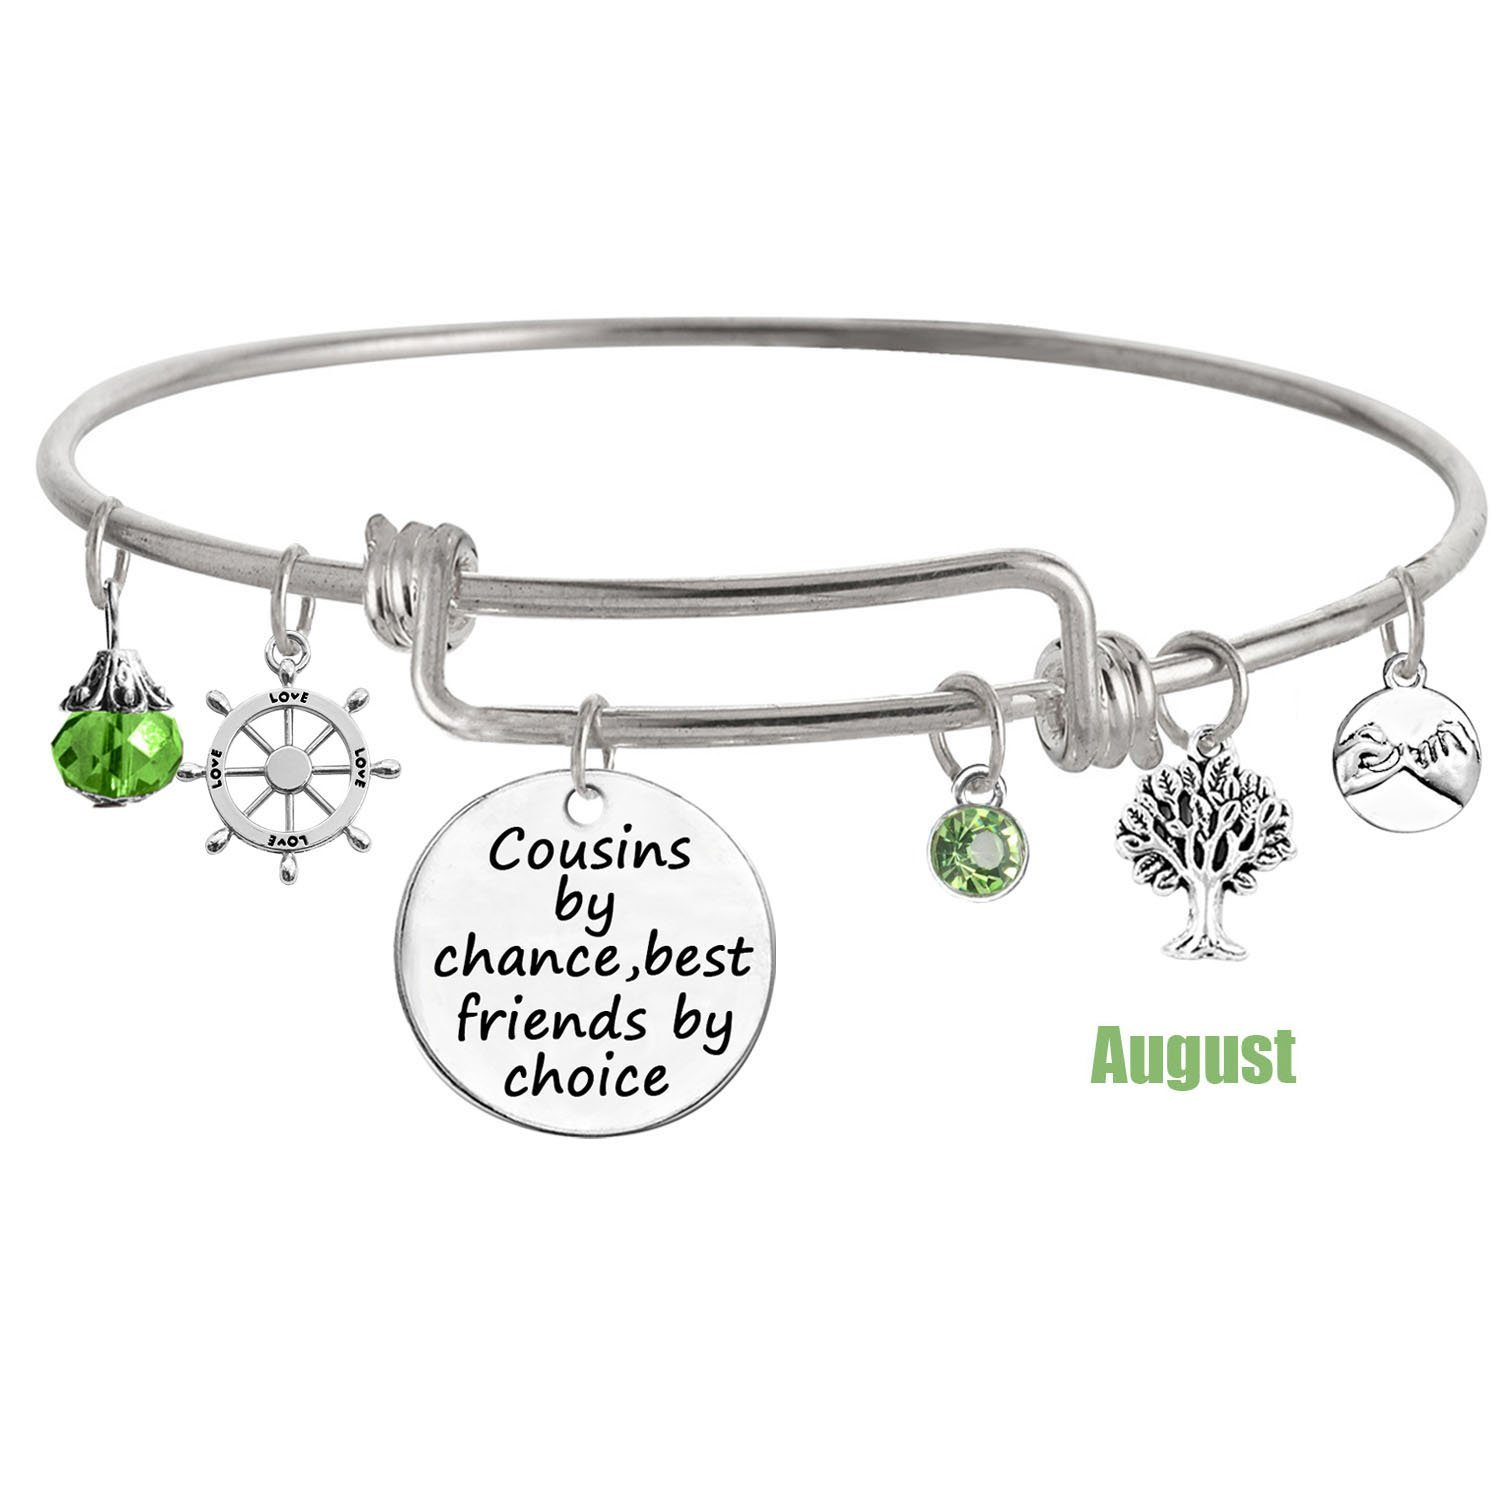 TISDA Cousin Jewelry, ''Cousins by Chance,Best Friends by Choice'' Bangle Bracelet (August)